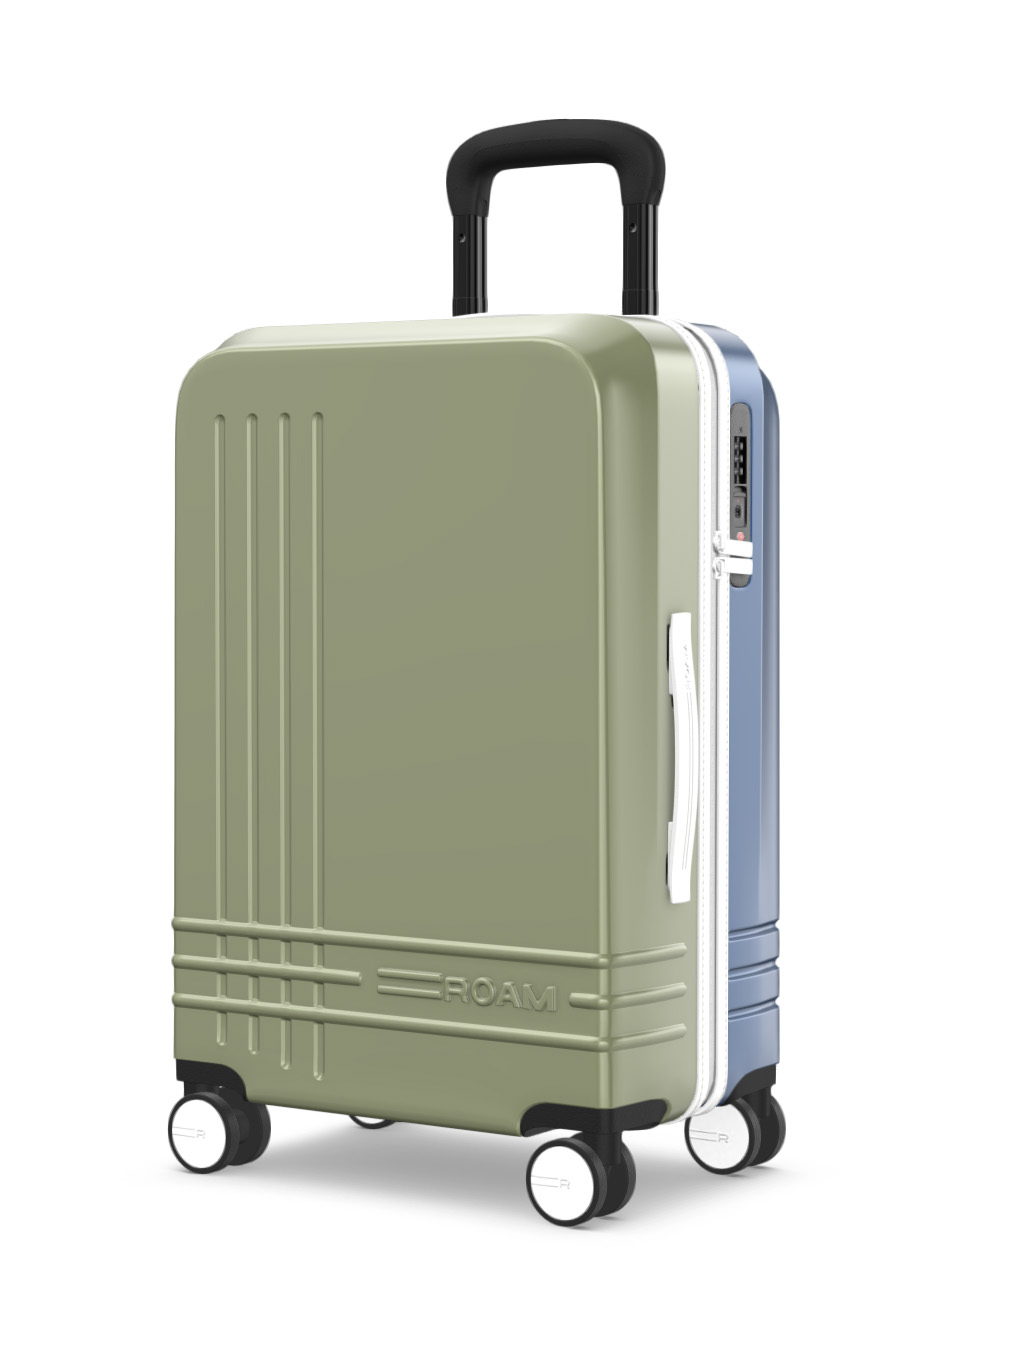 Best places to Buy Luggage Online - Roam